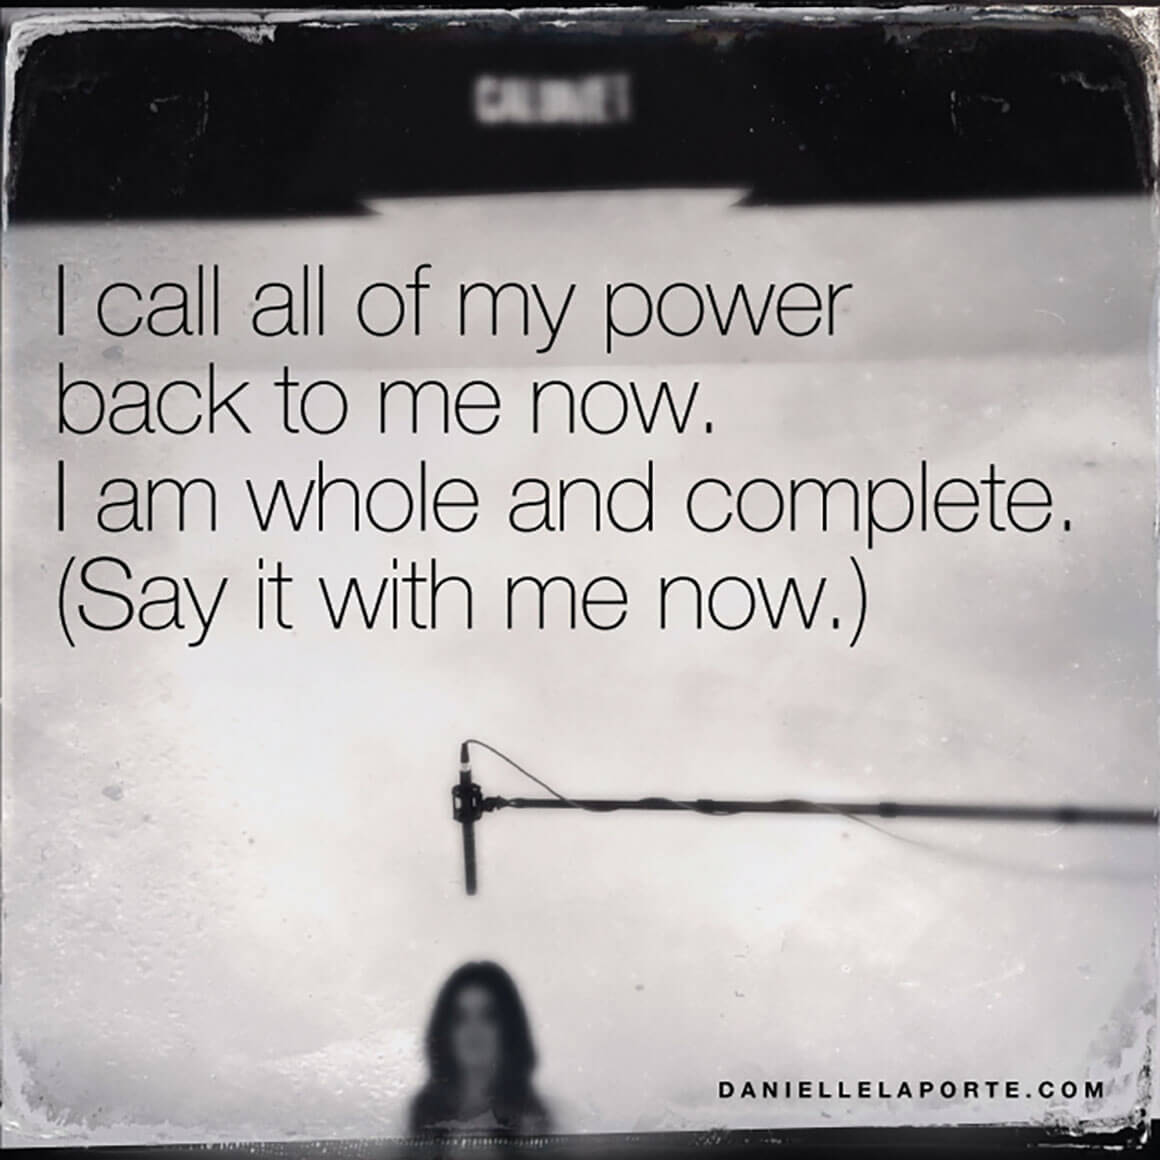 I call all of my power back to me now. I am whole and complete. (Say it with me now.)